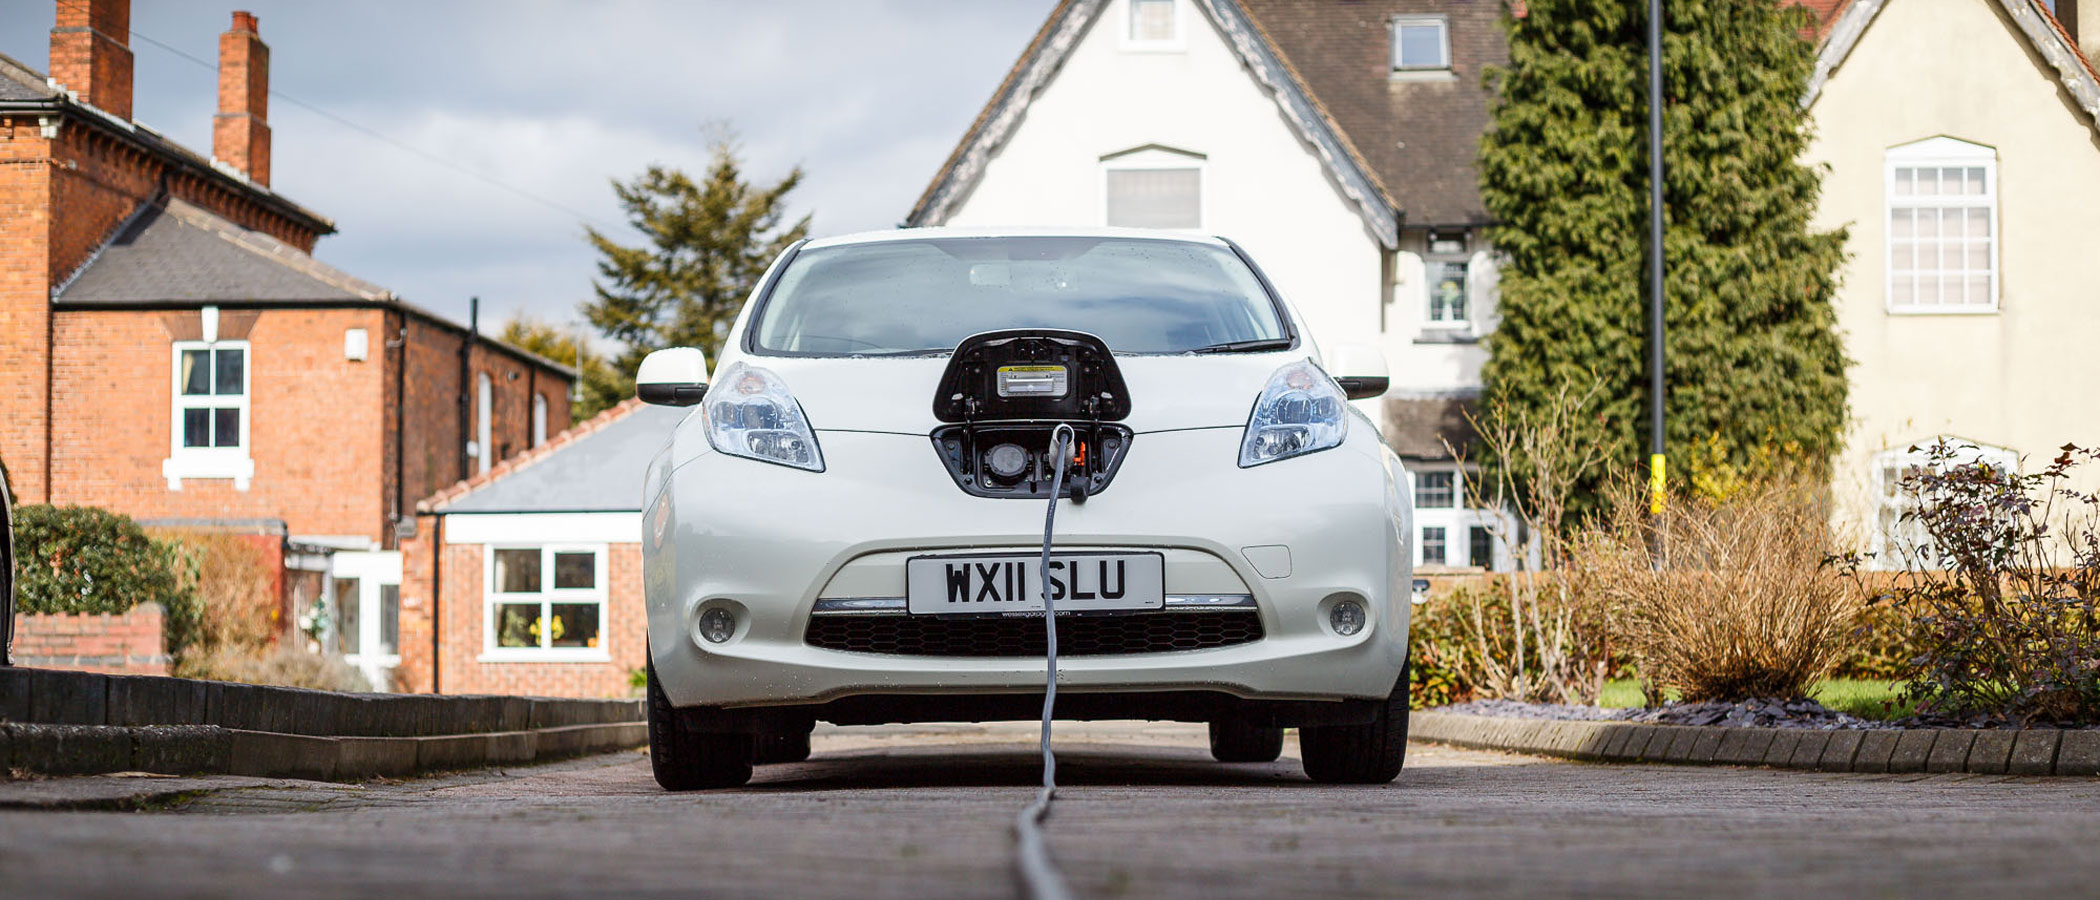 Electric vehicle charging in the driveway of a residence.